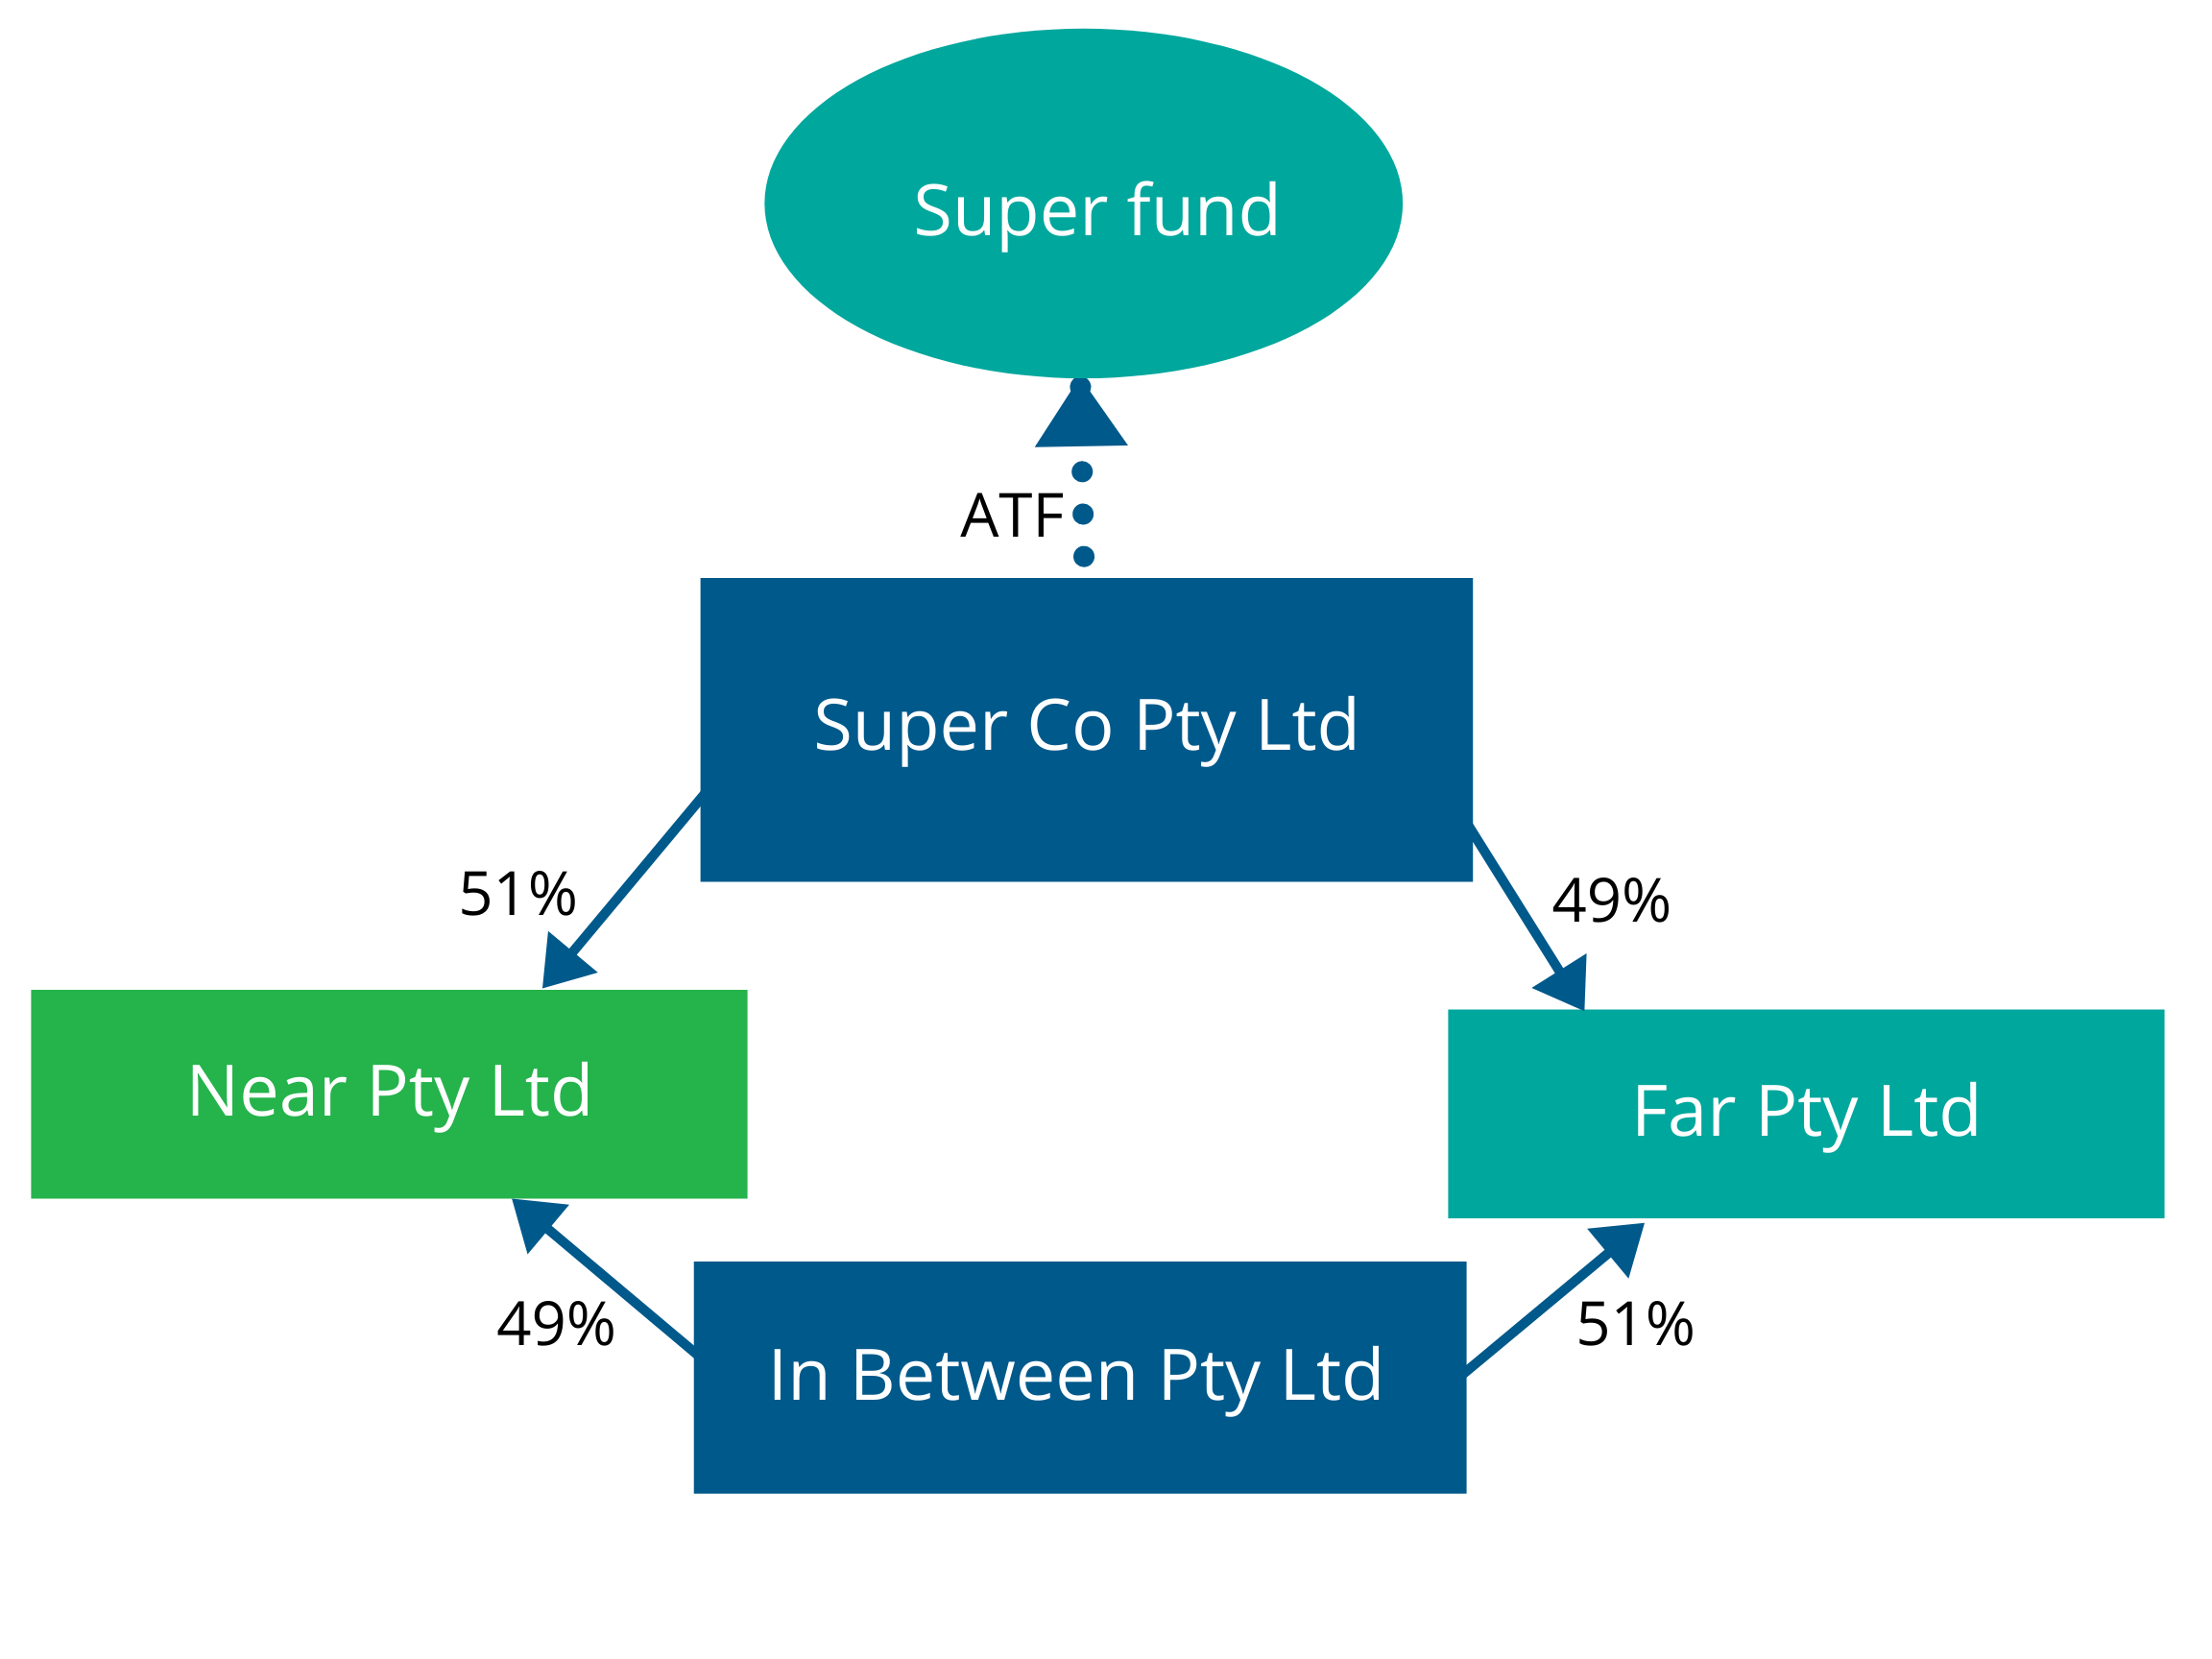 Illustration showing Super Co Pty Ltd and In Between Pty Ltd have shares in Near Pty Ltd and Far Pty ltd.